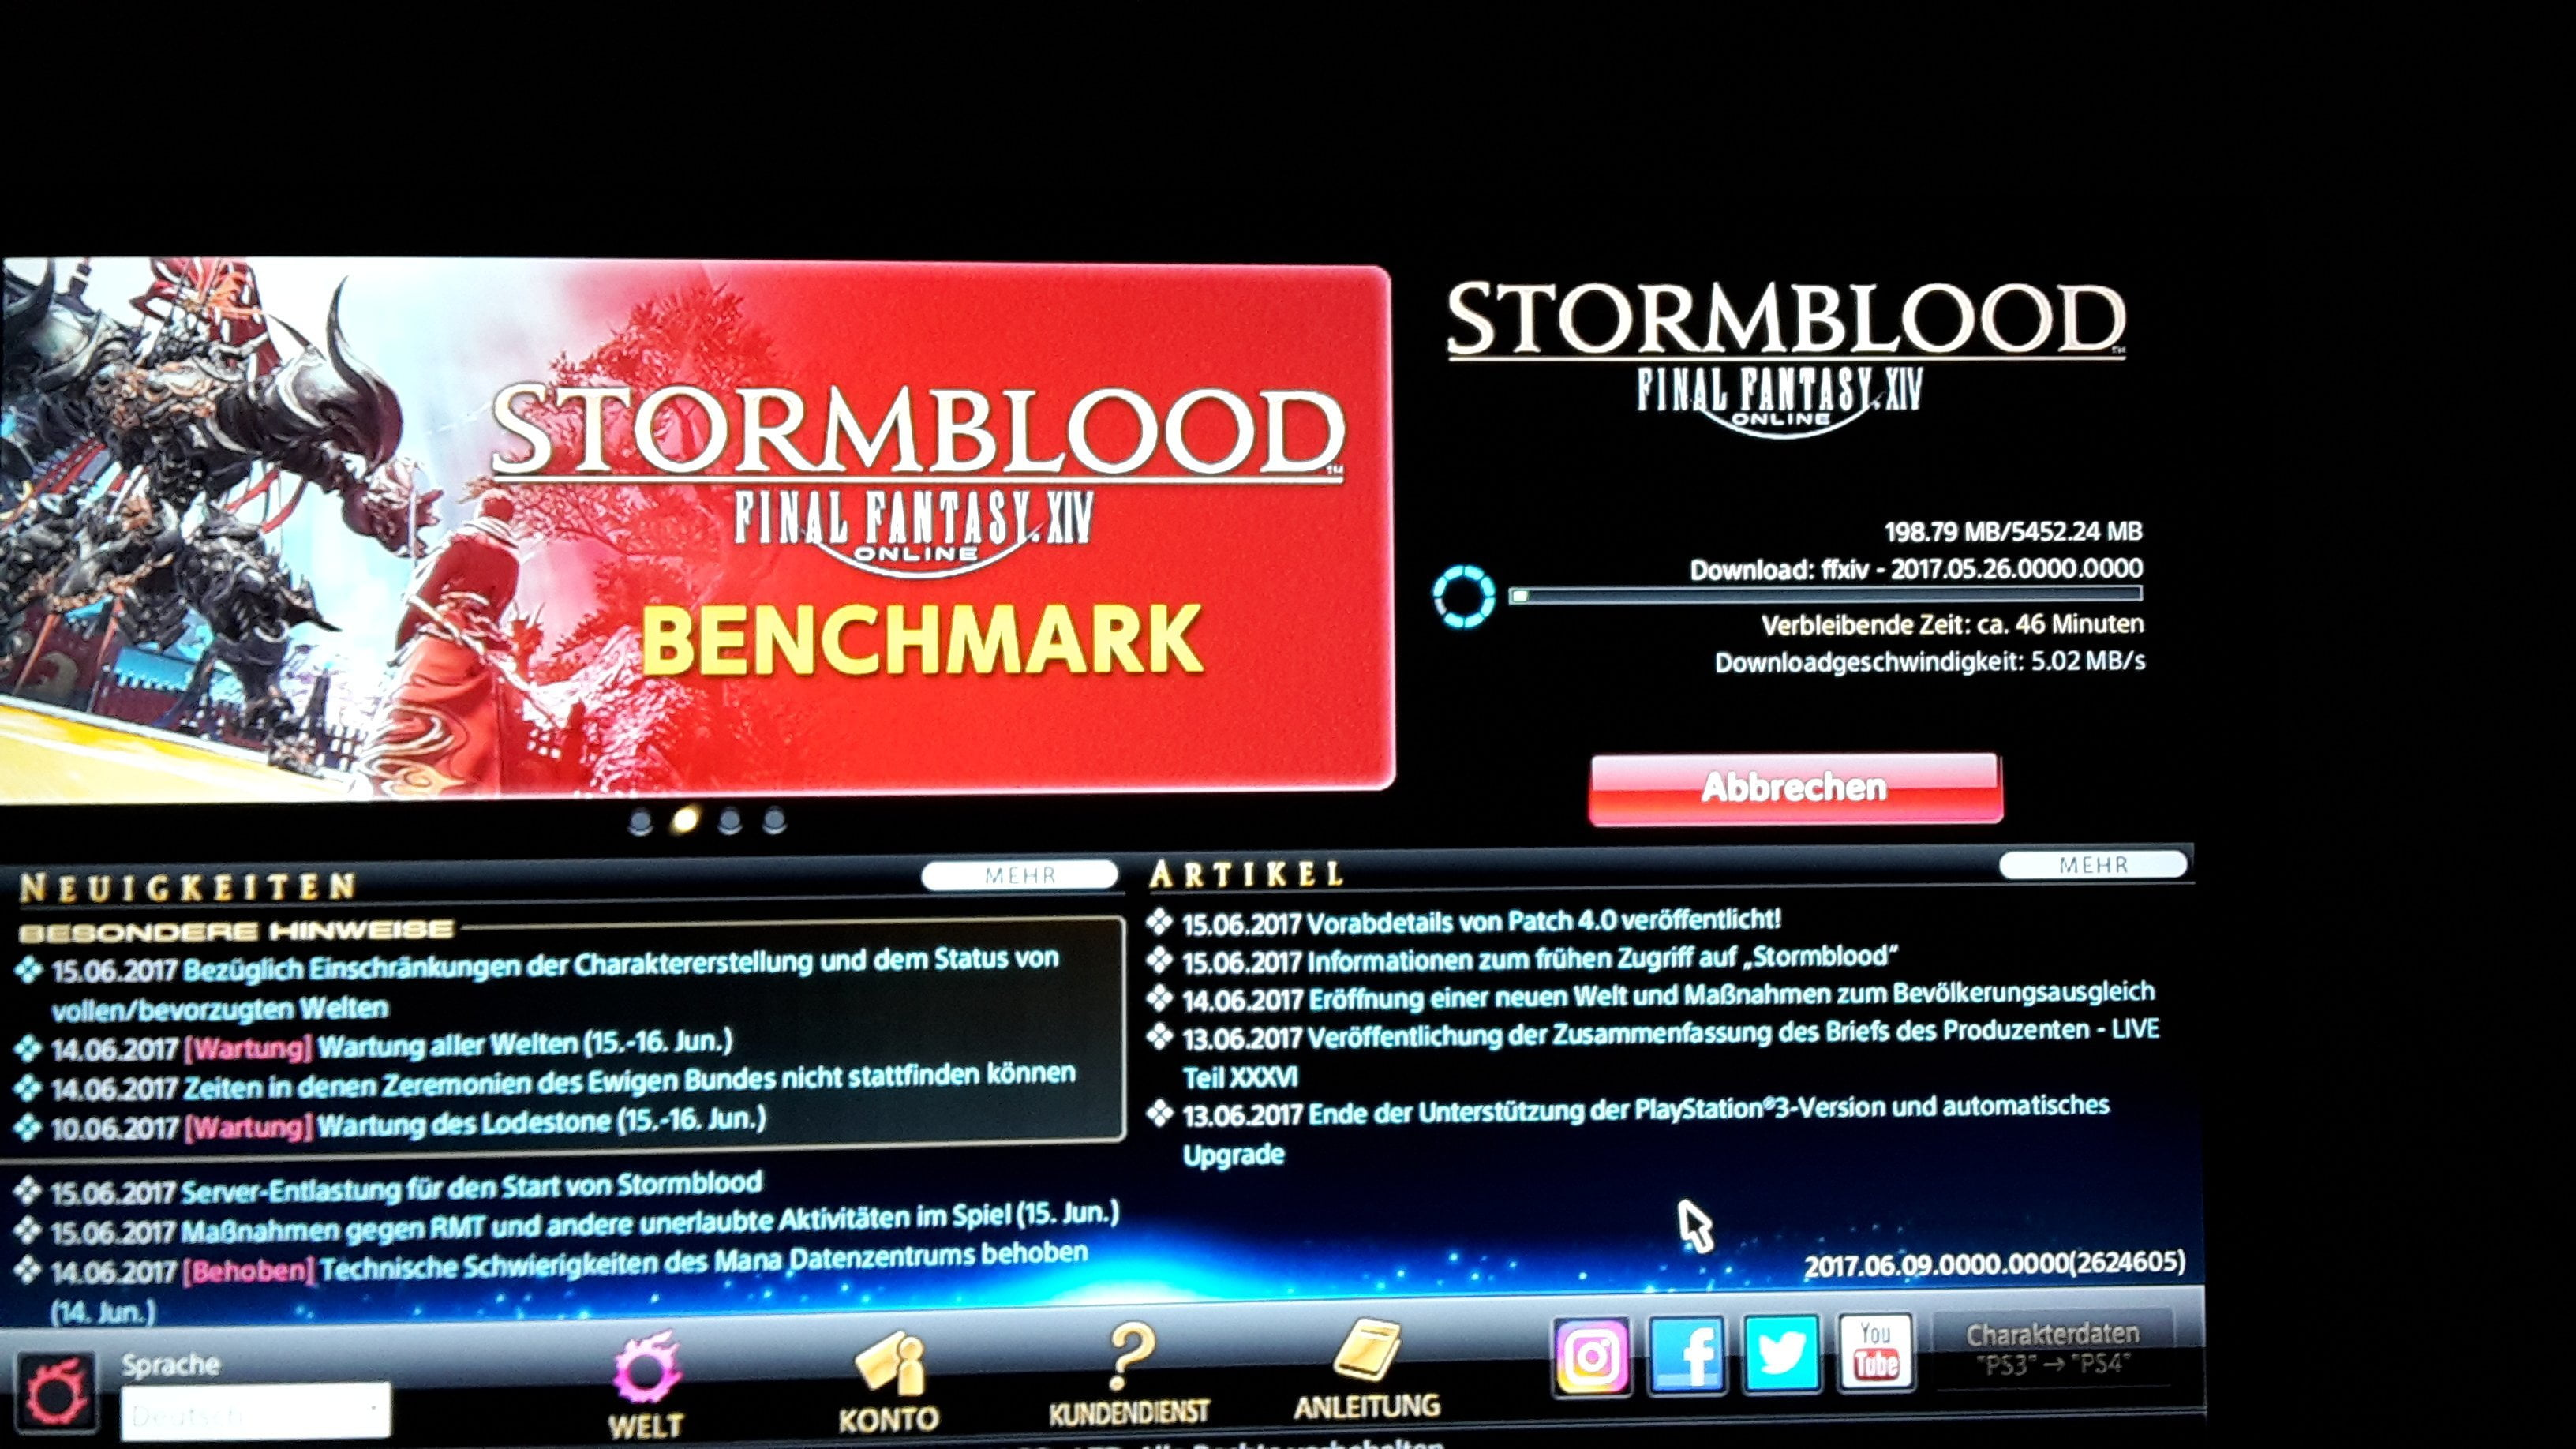 Final Fantasy XIV Stormblood Breaking News Download steht bereit